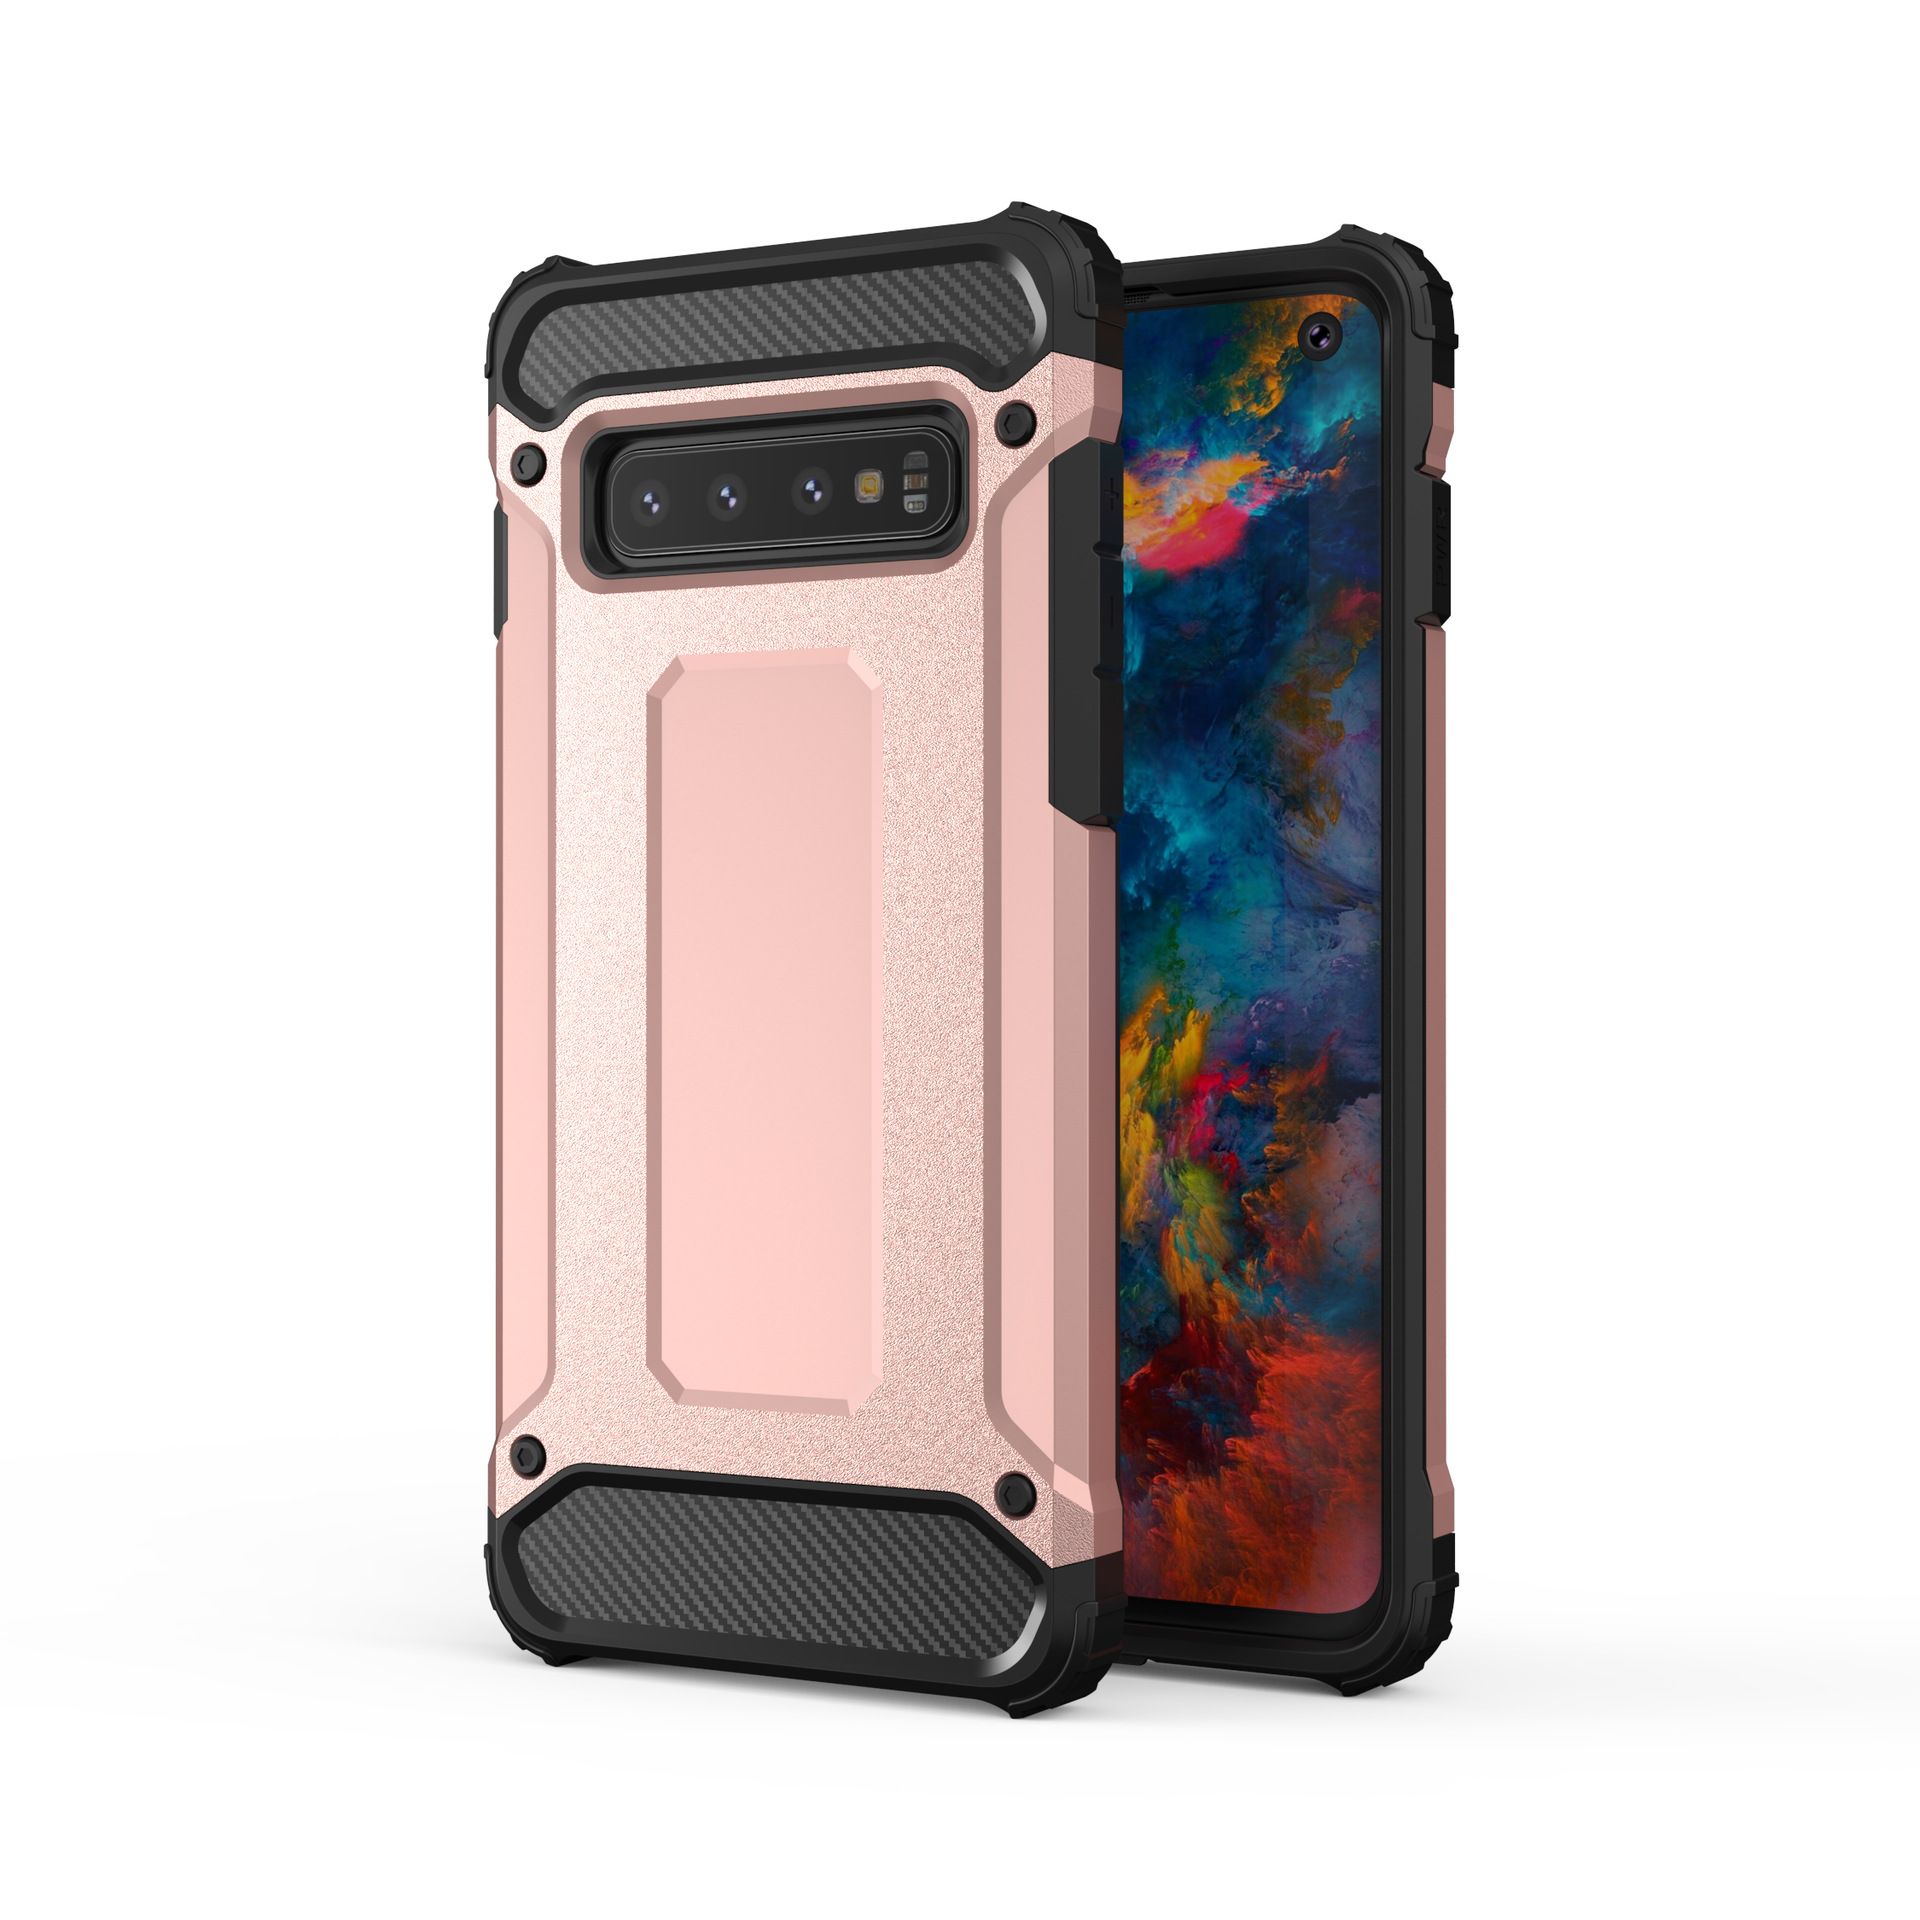 Armor Hybrid Defender Case TPU+PC Shockproof Cover Case FOR SAMSUNG Galaxy J4 PLUS J6 PLUS A6S A9 A7 A750